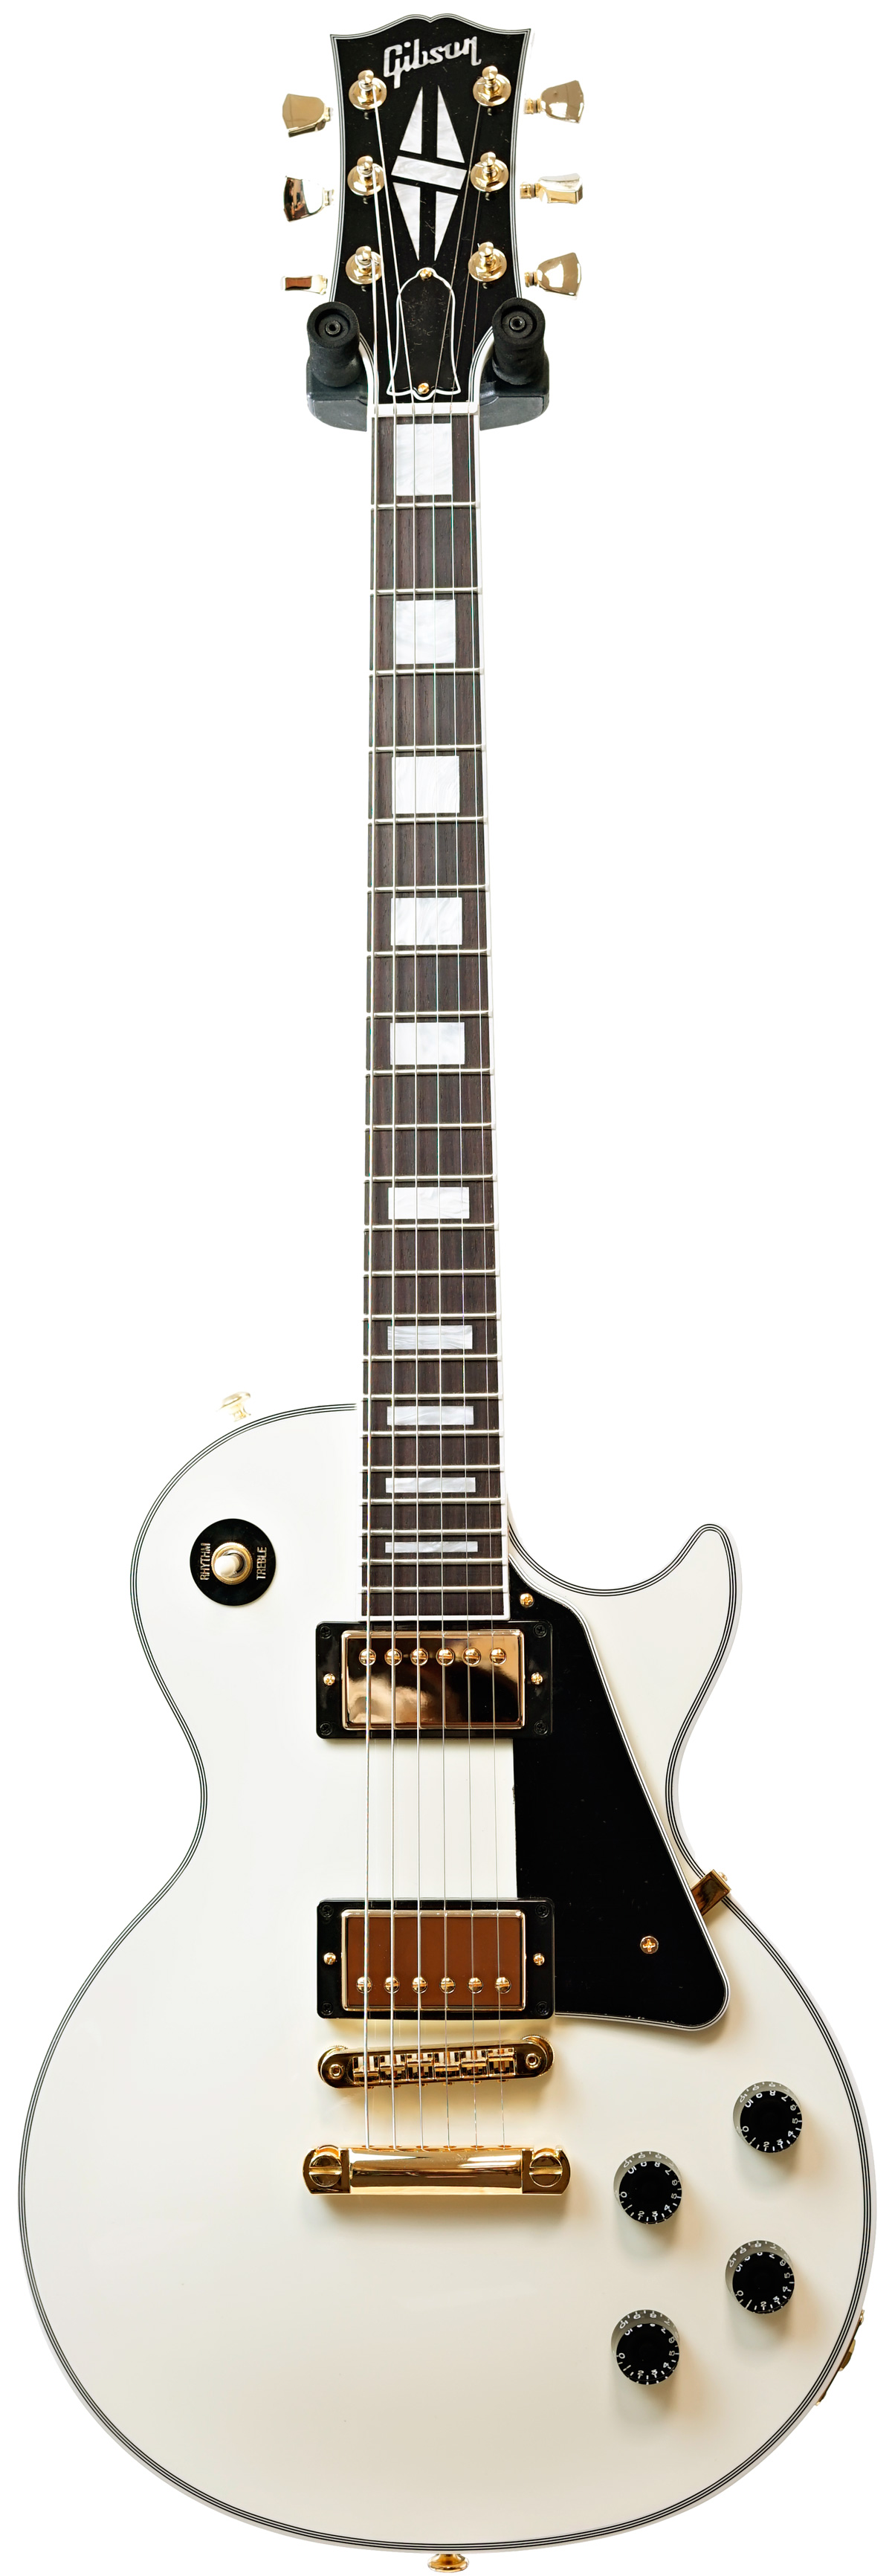 gibson les paul classic custom light classic white 2016 limited proprietary. Black Bedroom Furniture Sets. Home Design Ideas